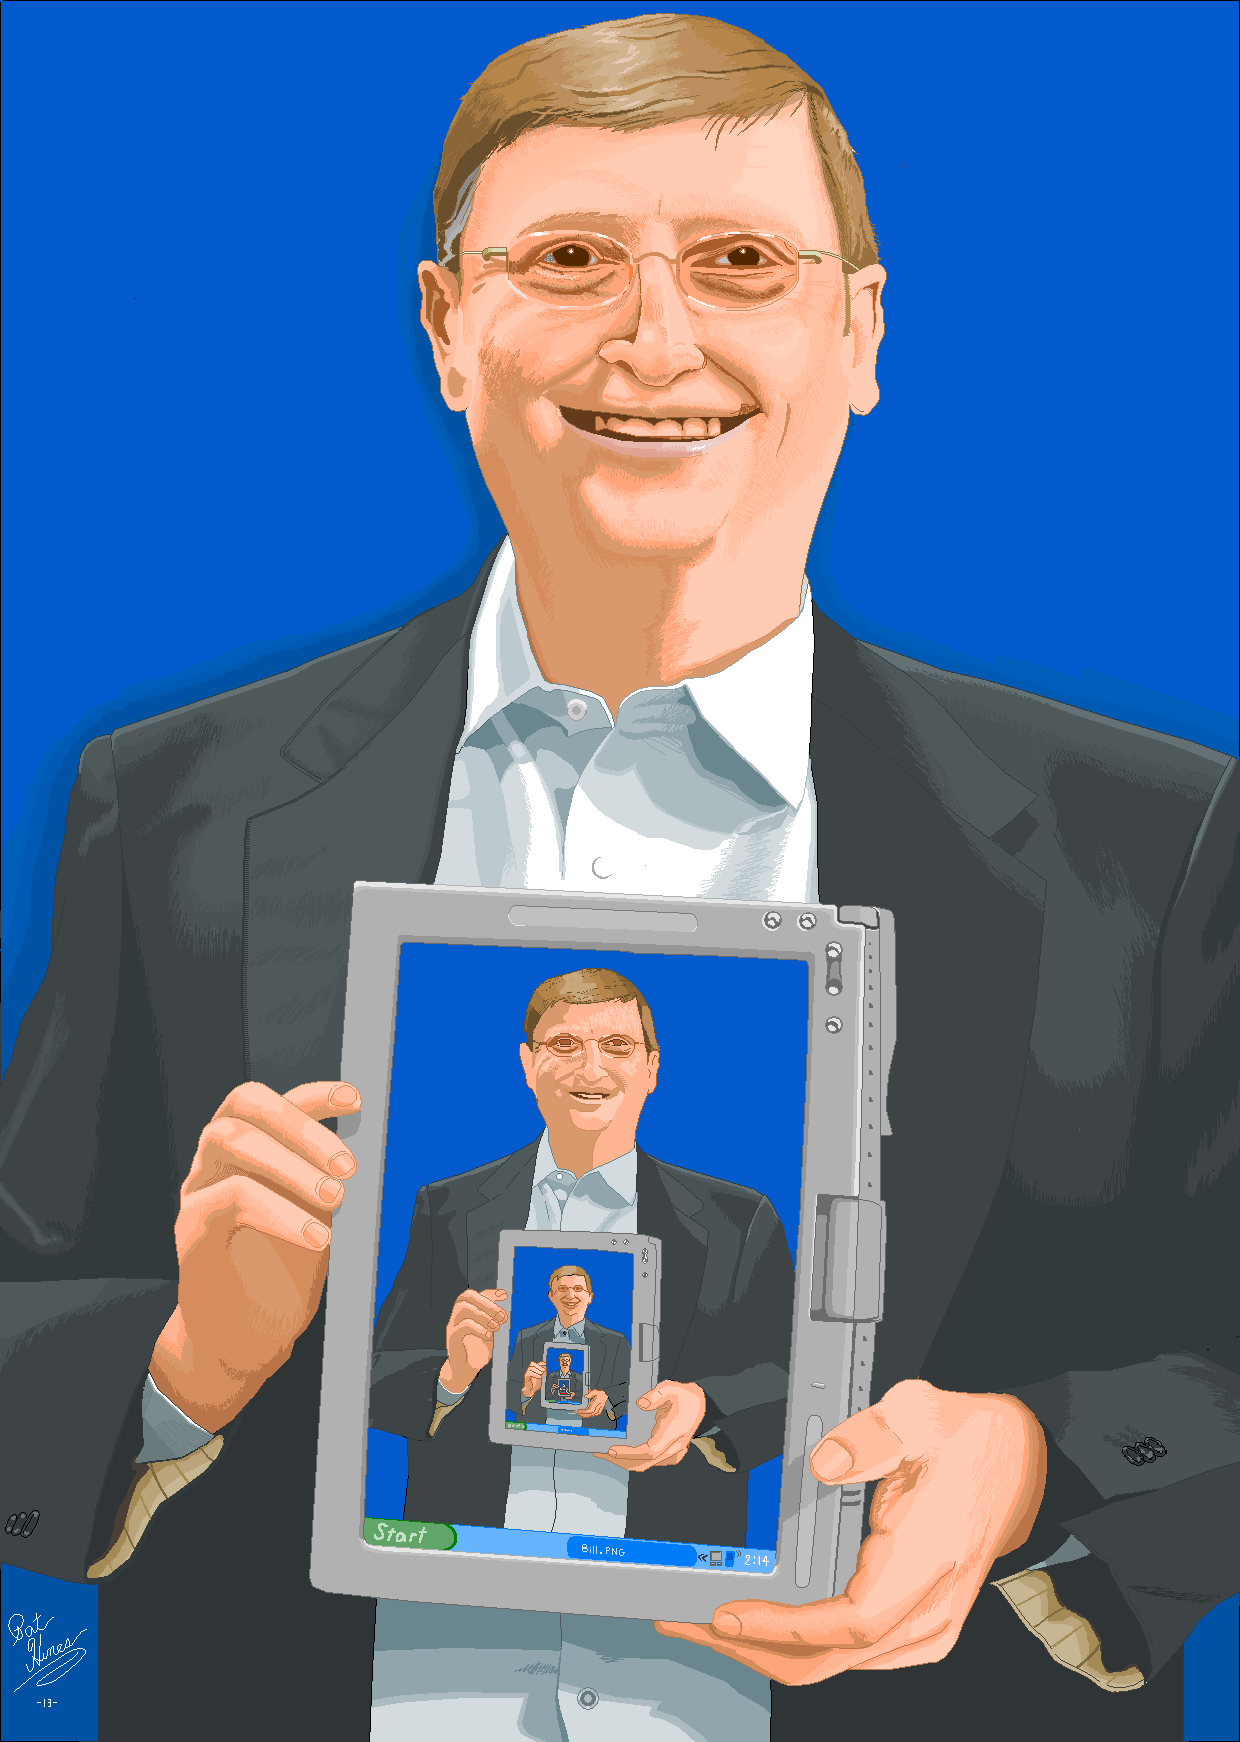 Bill Gates in Microsoft Paint by CaptainRedblood